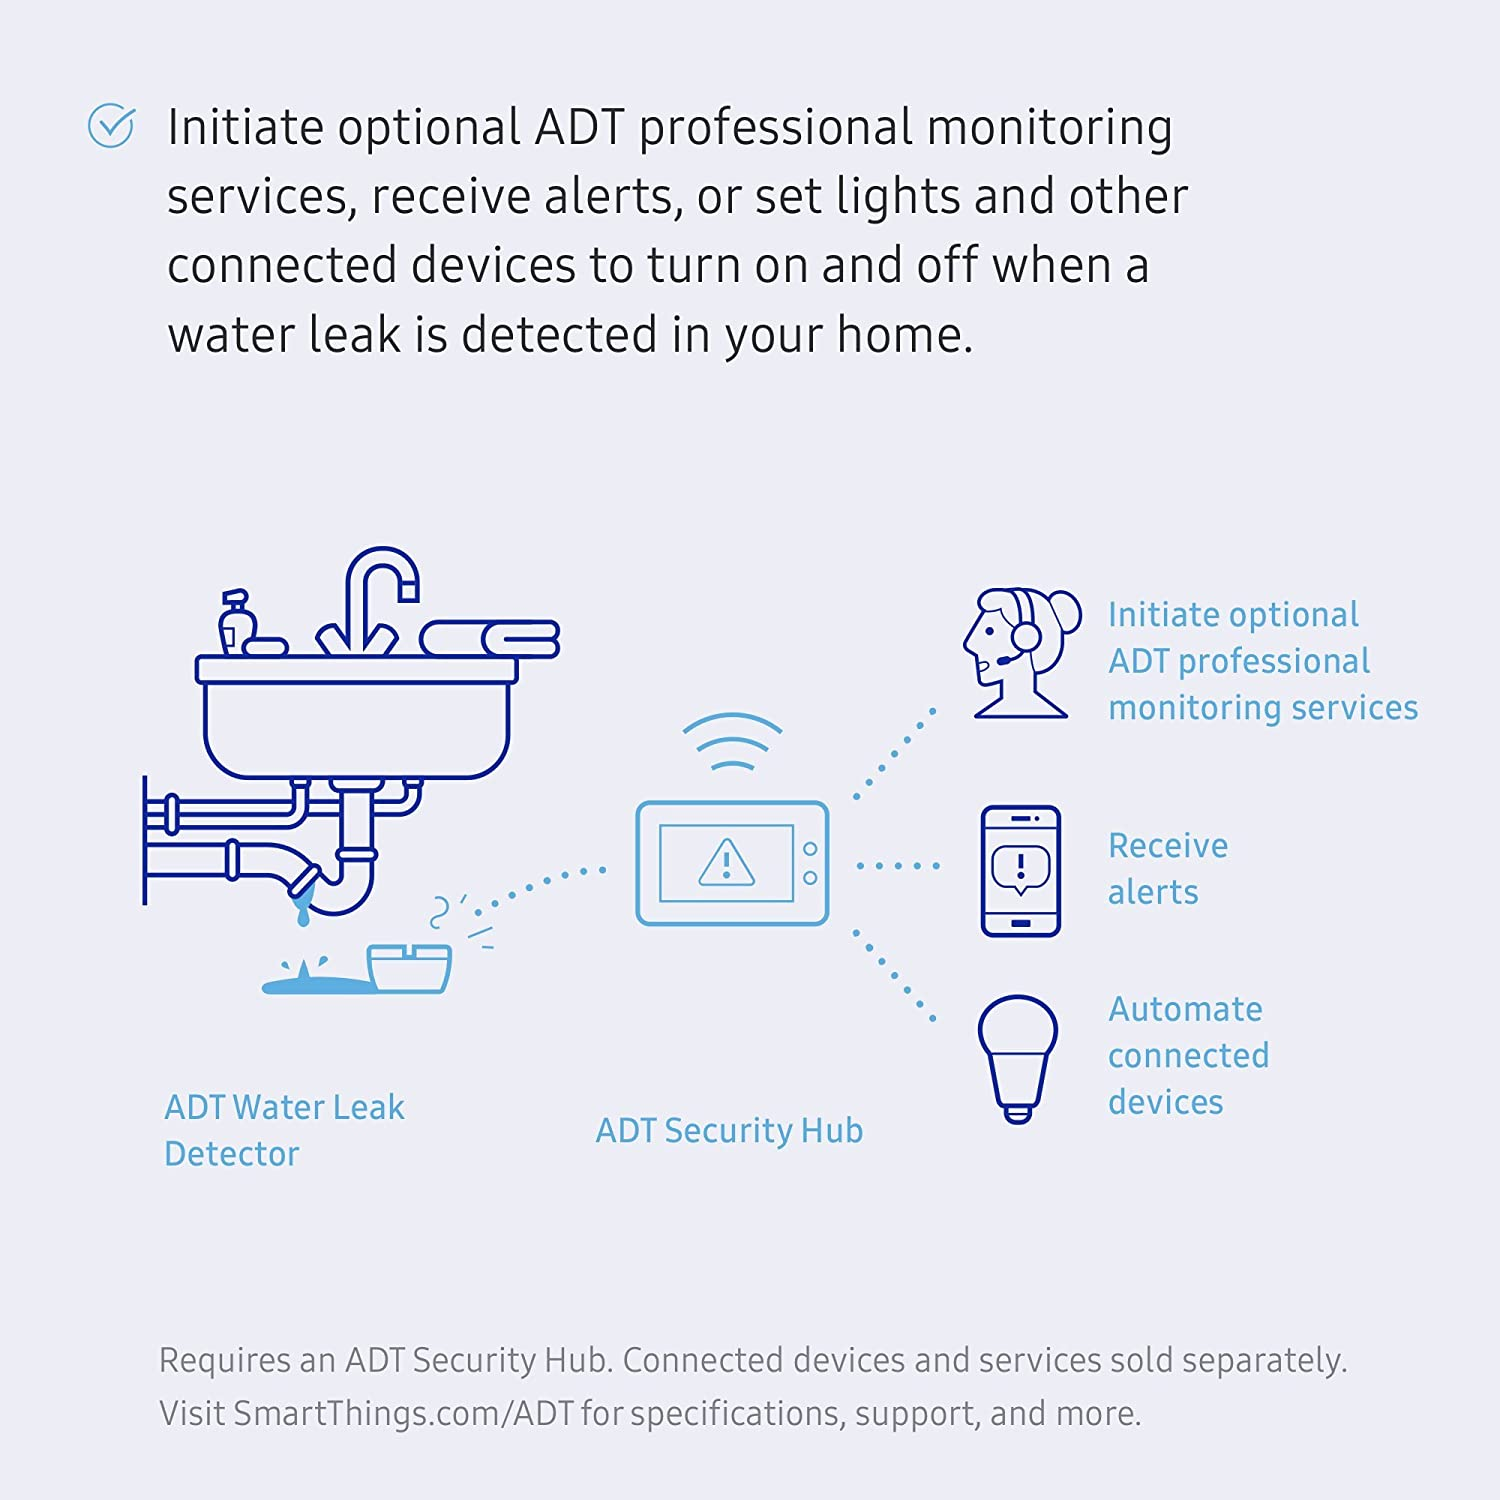 Samsung SmartThings ADT Water Leak Detector